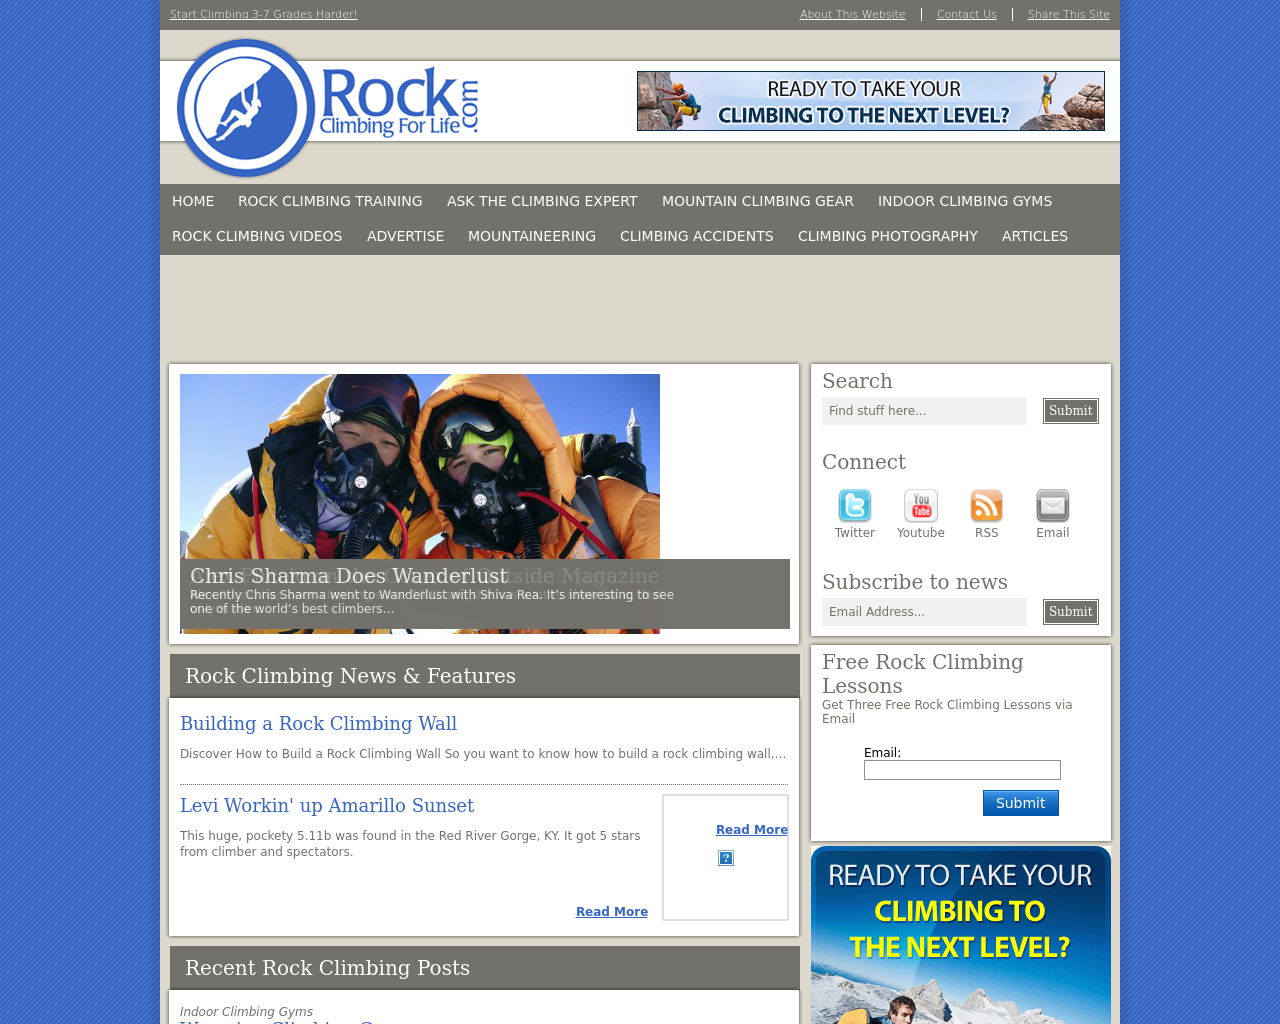 Rock-Climbing-For-Life-Advertising-Reviews-Pricing